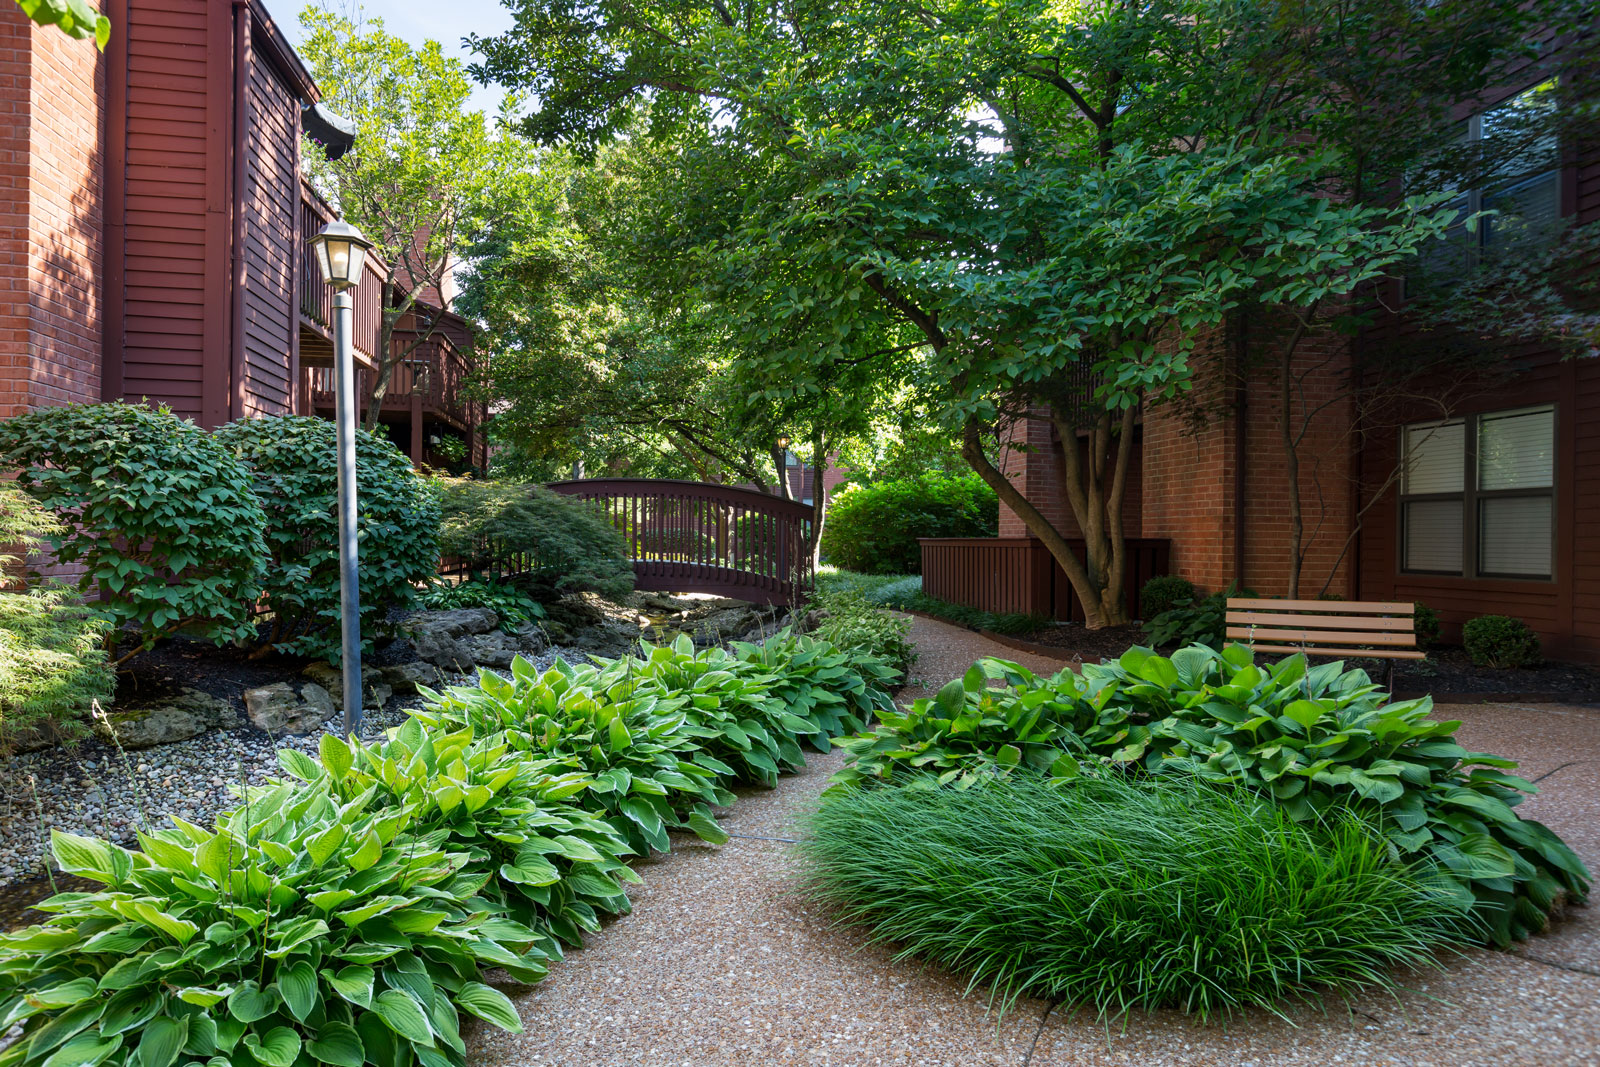 Landscaping and outdoors decor at Chesterfield Village Apartments